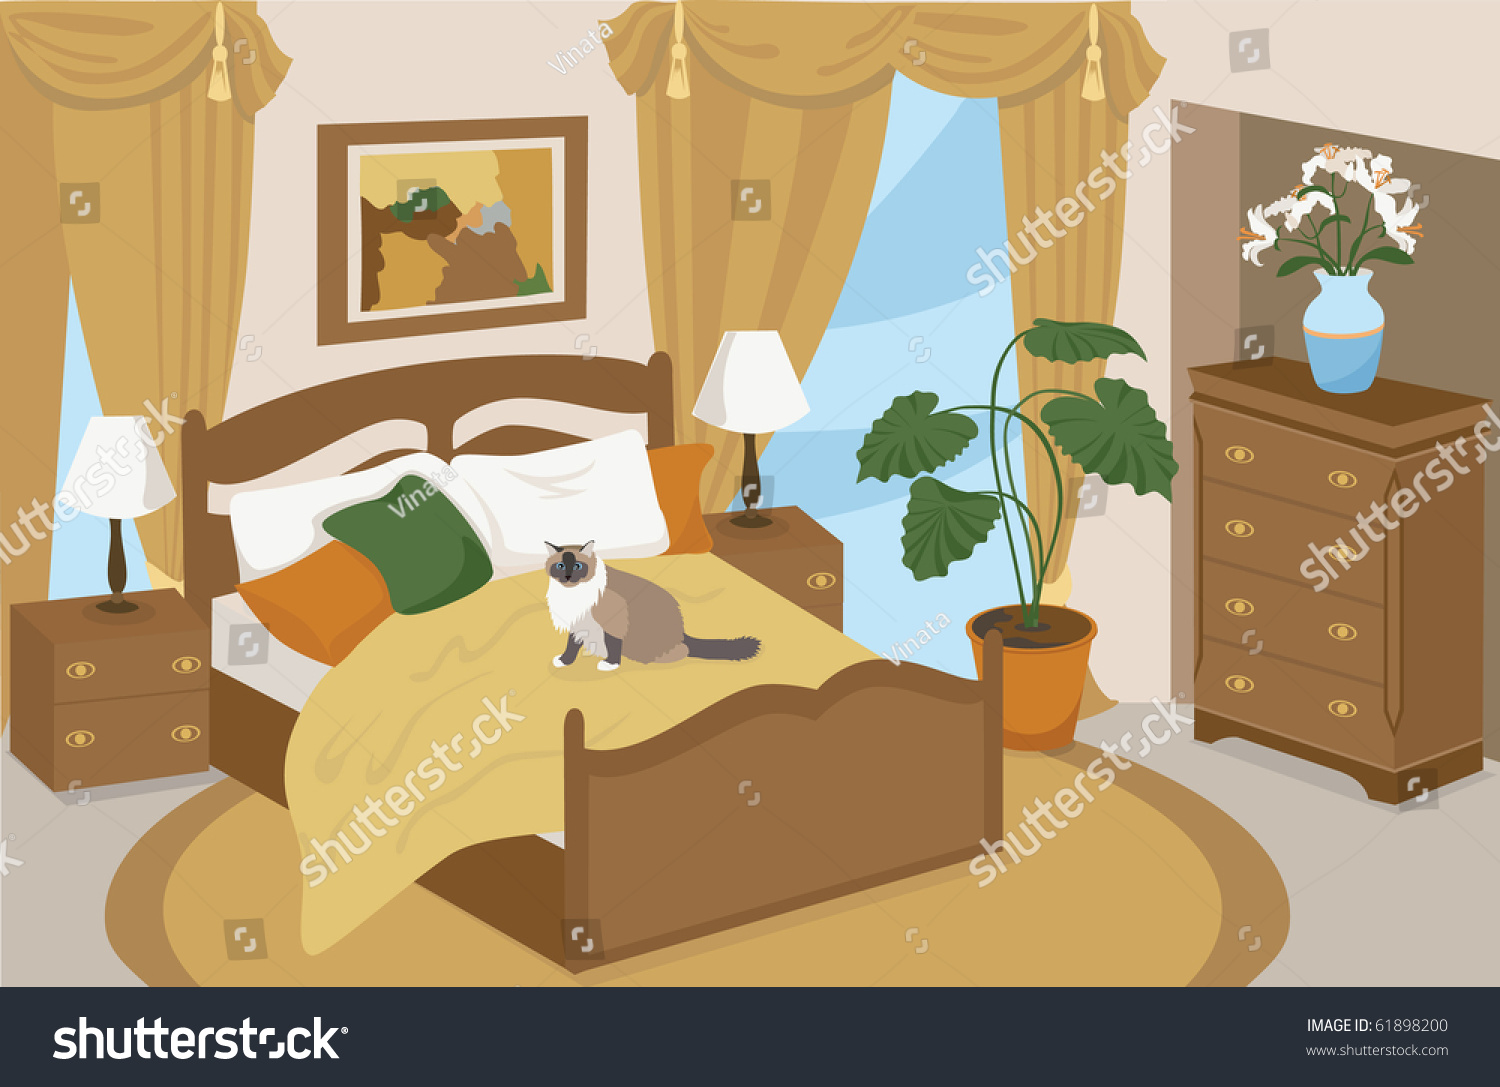 Bedroom drawing with color - Bedroom Drawing Bedroom Drawing Stock Vector 61898200 Shutterstock